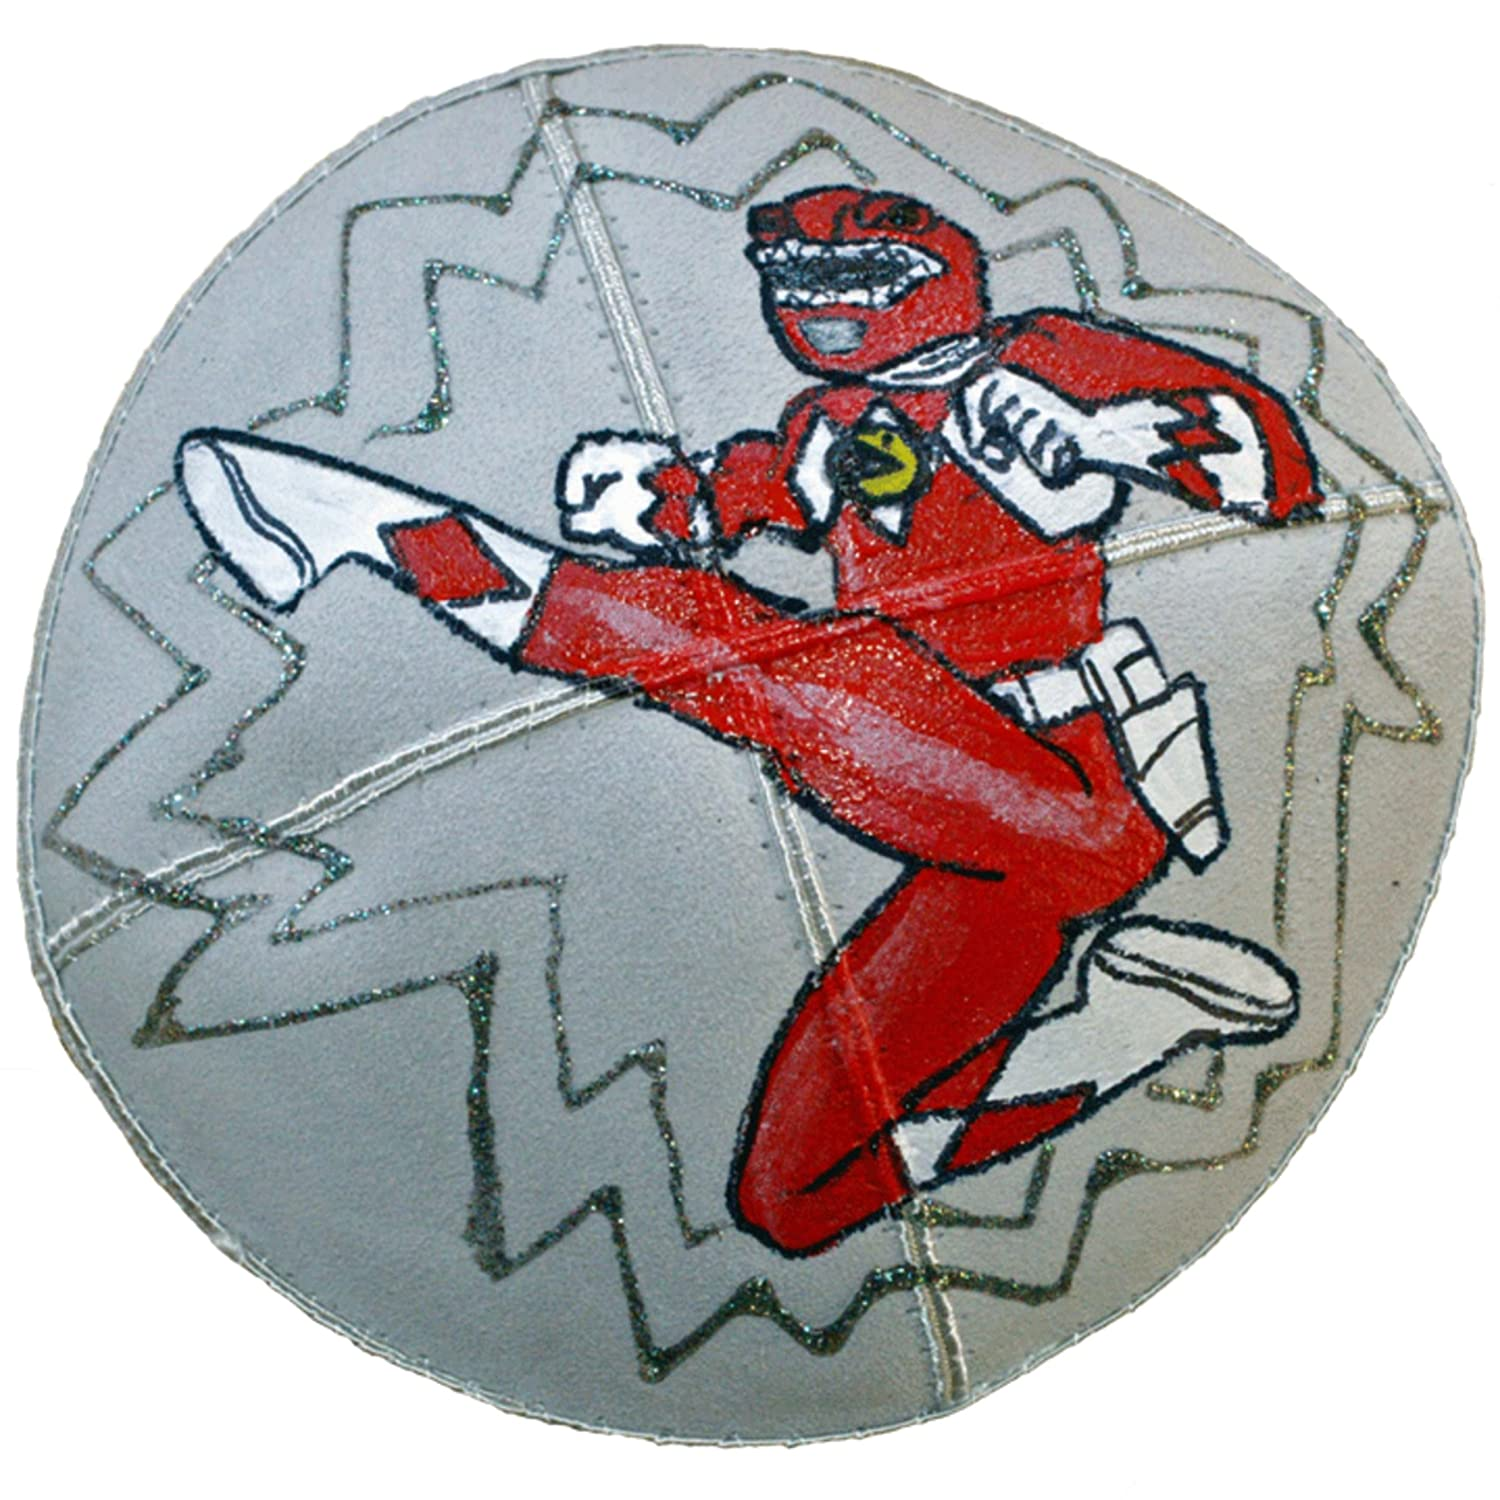 Hand-painted Kippah (Yarmulke) with Red Power Ranger